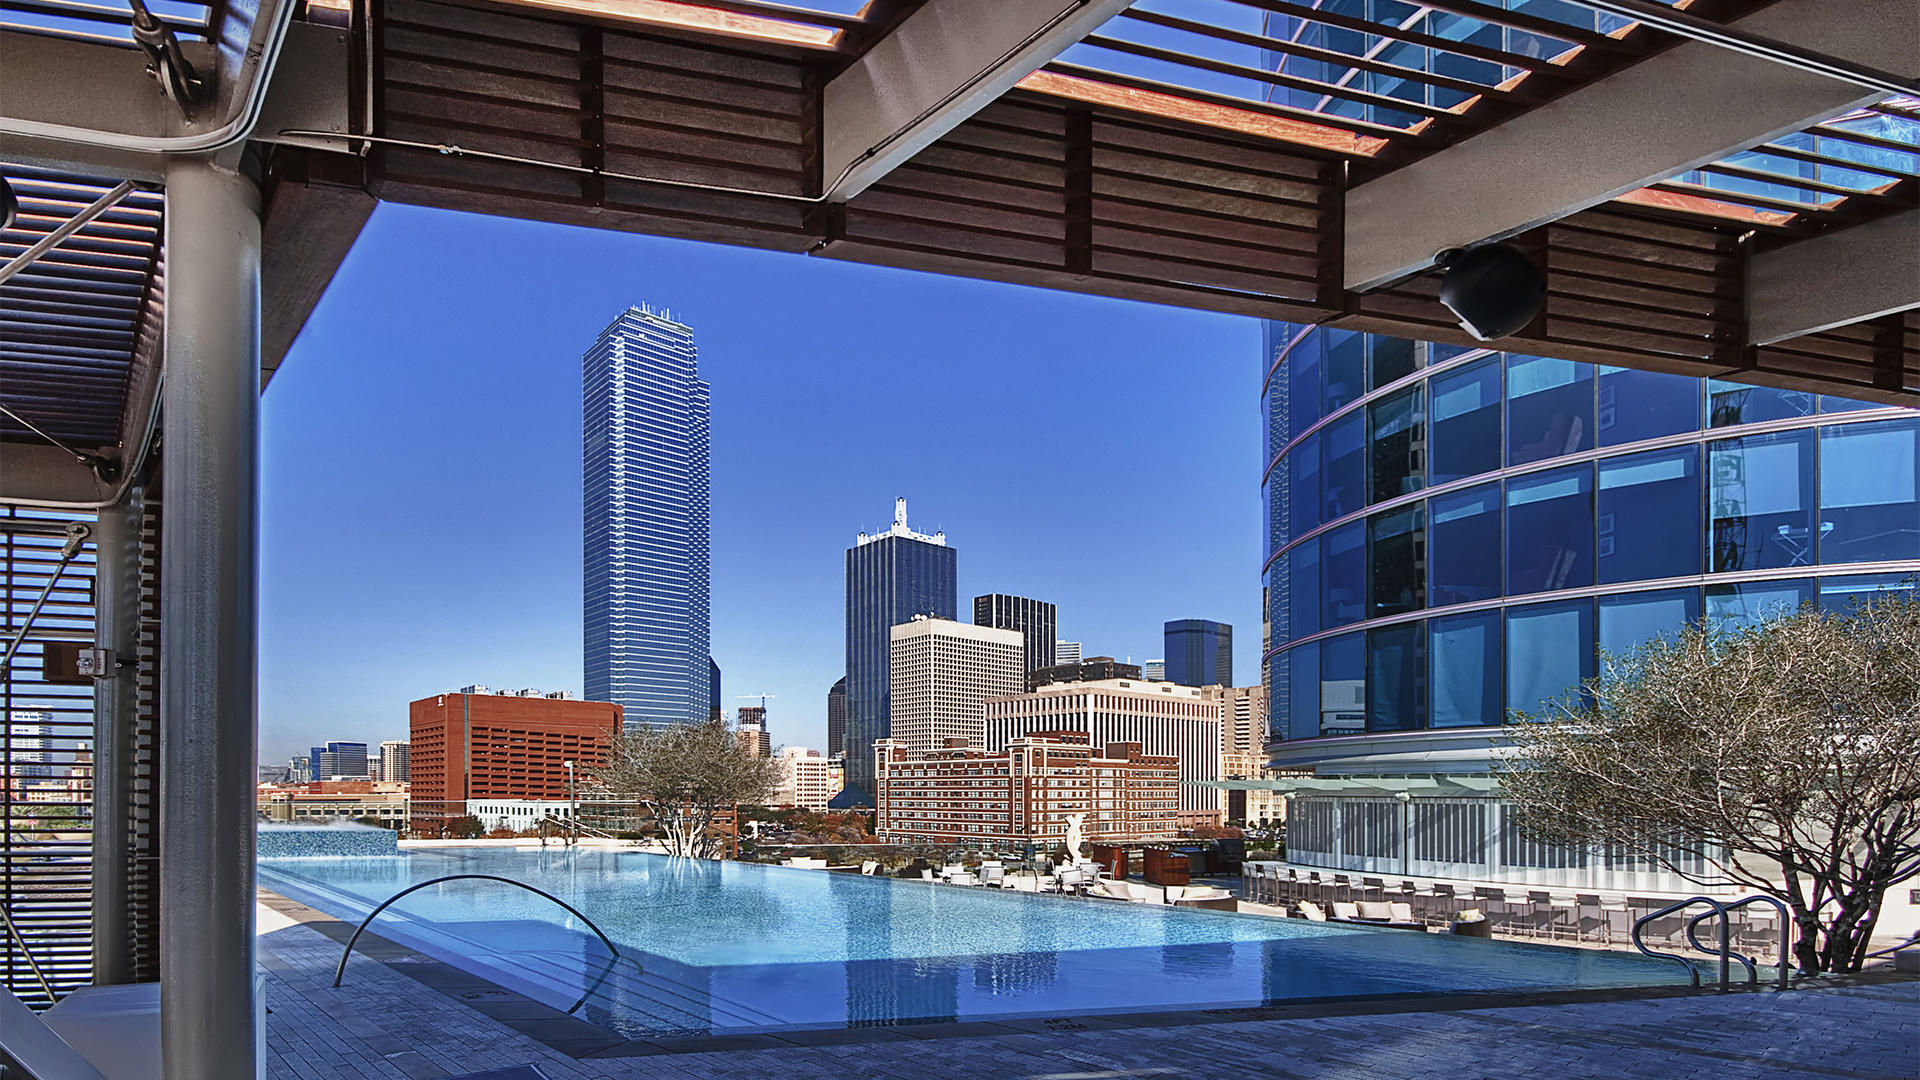 Omni_Dallas_Rooftop_Pool